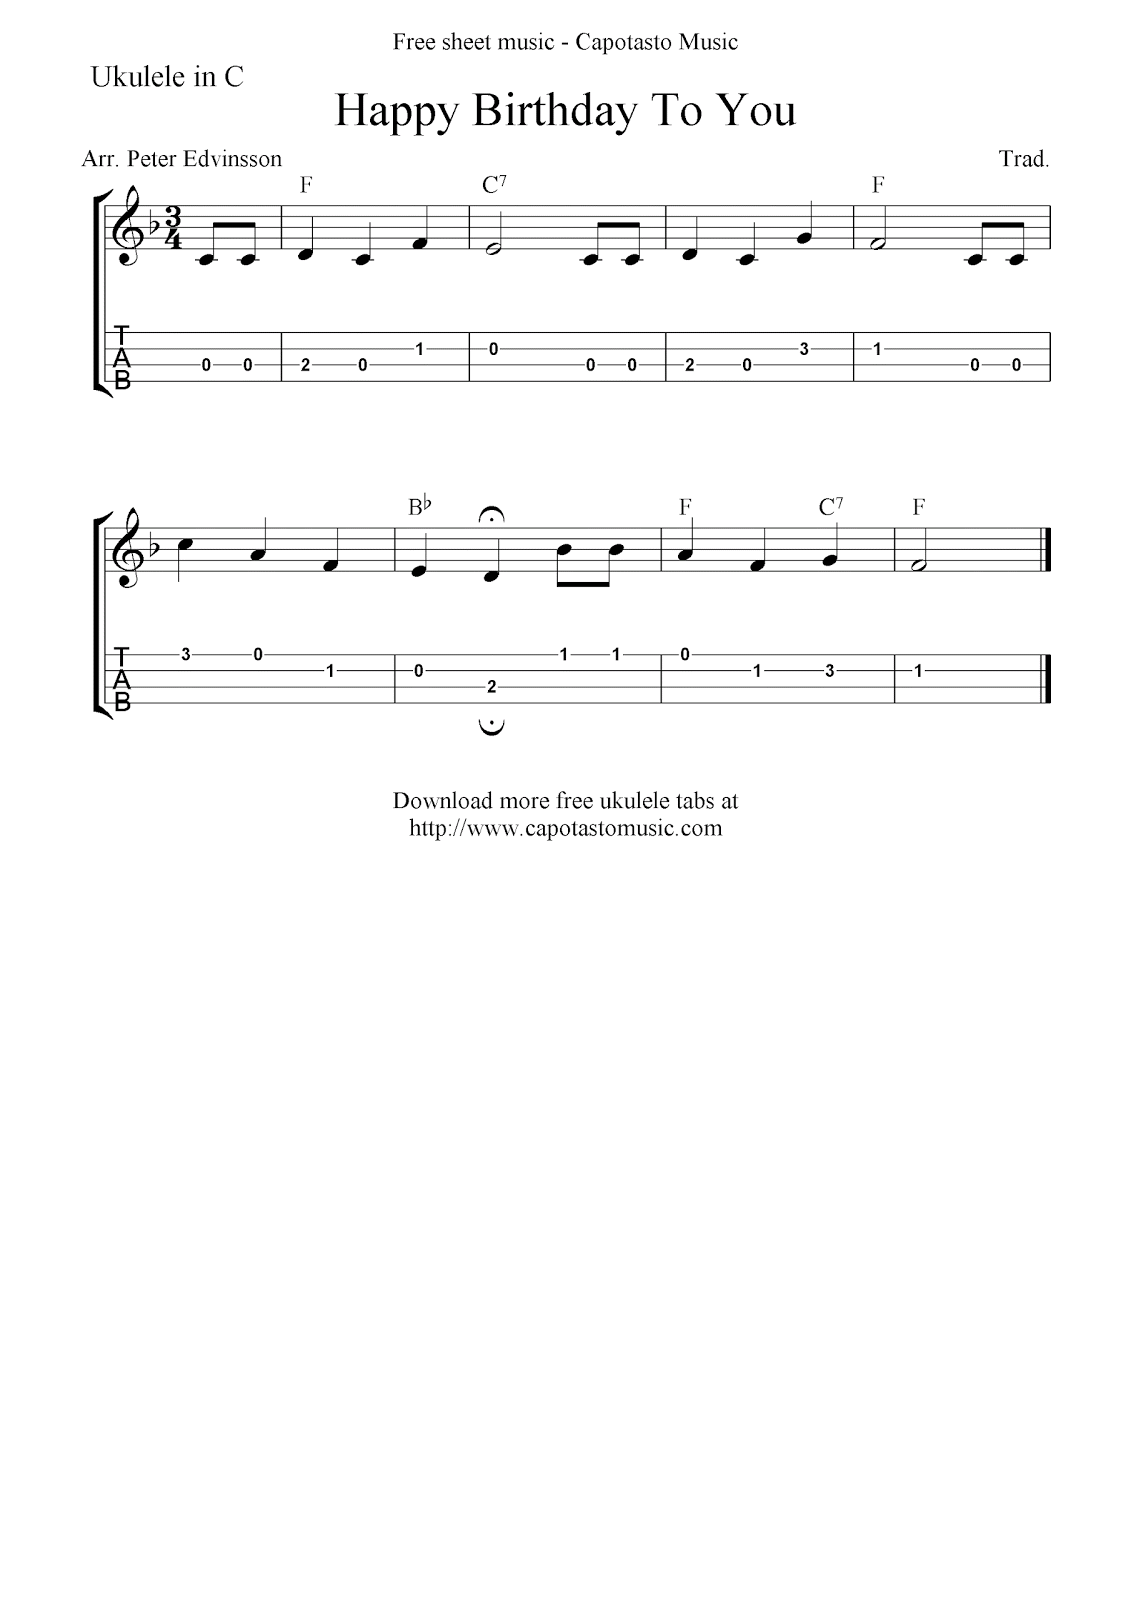 Free sheet music scores jingle bells free christmas ukulele tab happy birthday to you free ukulele tab sheet music hexwebz Images